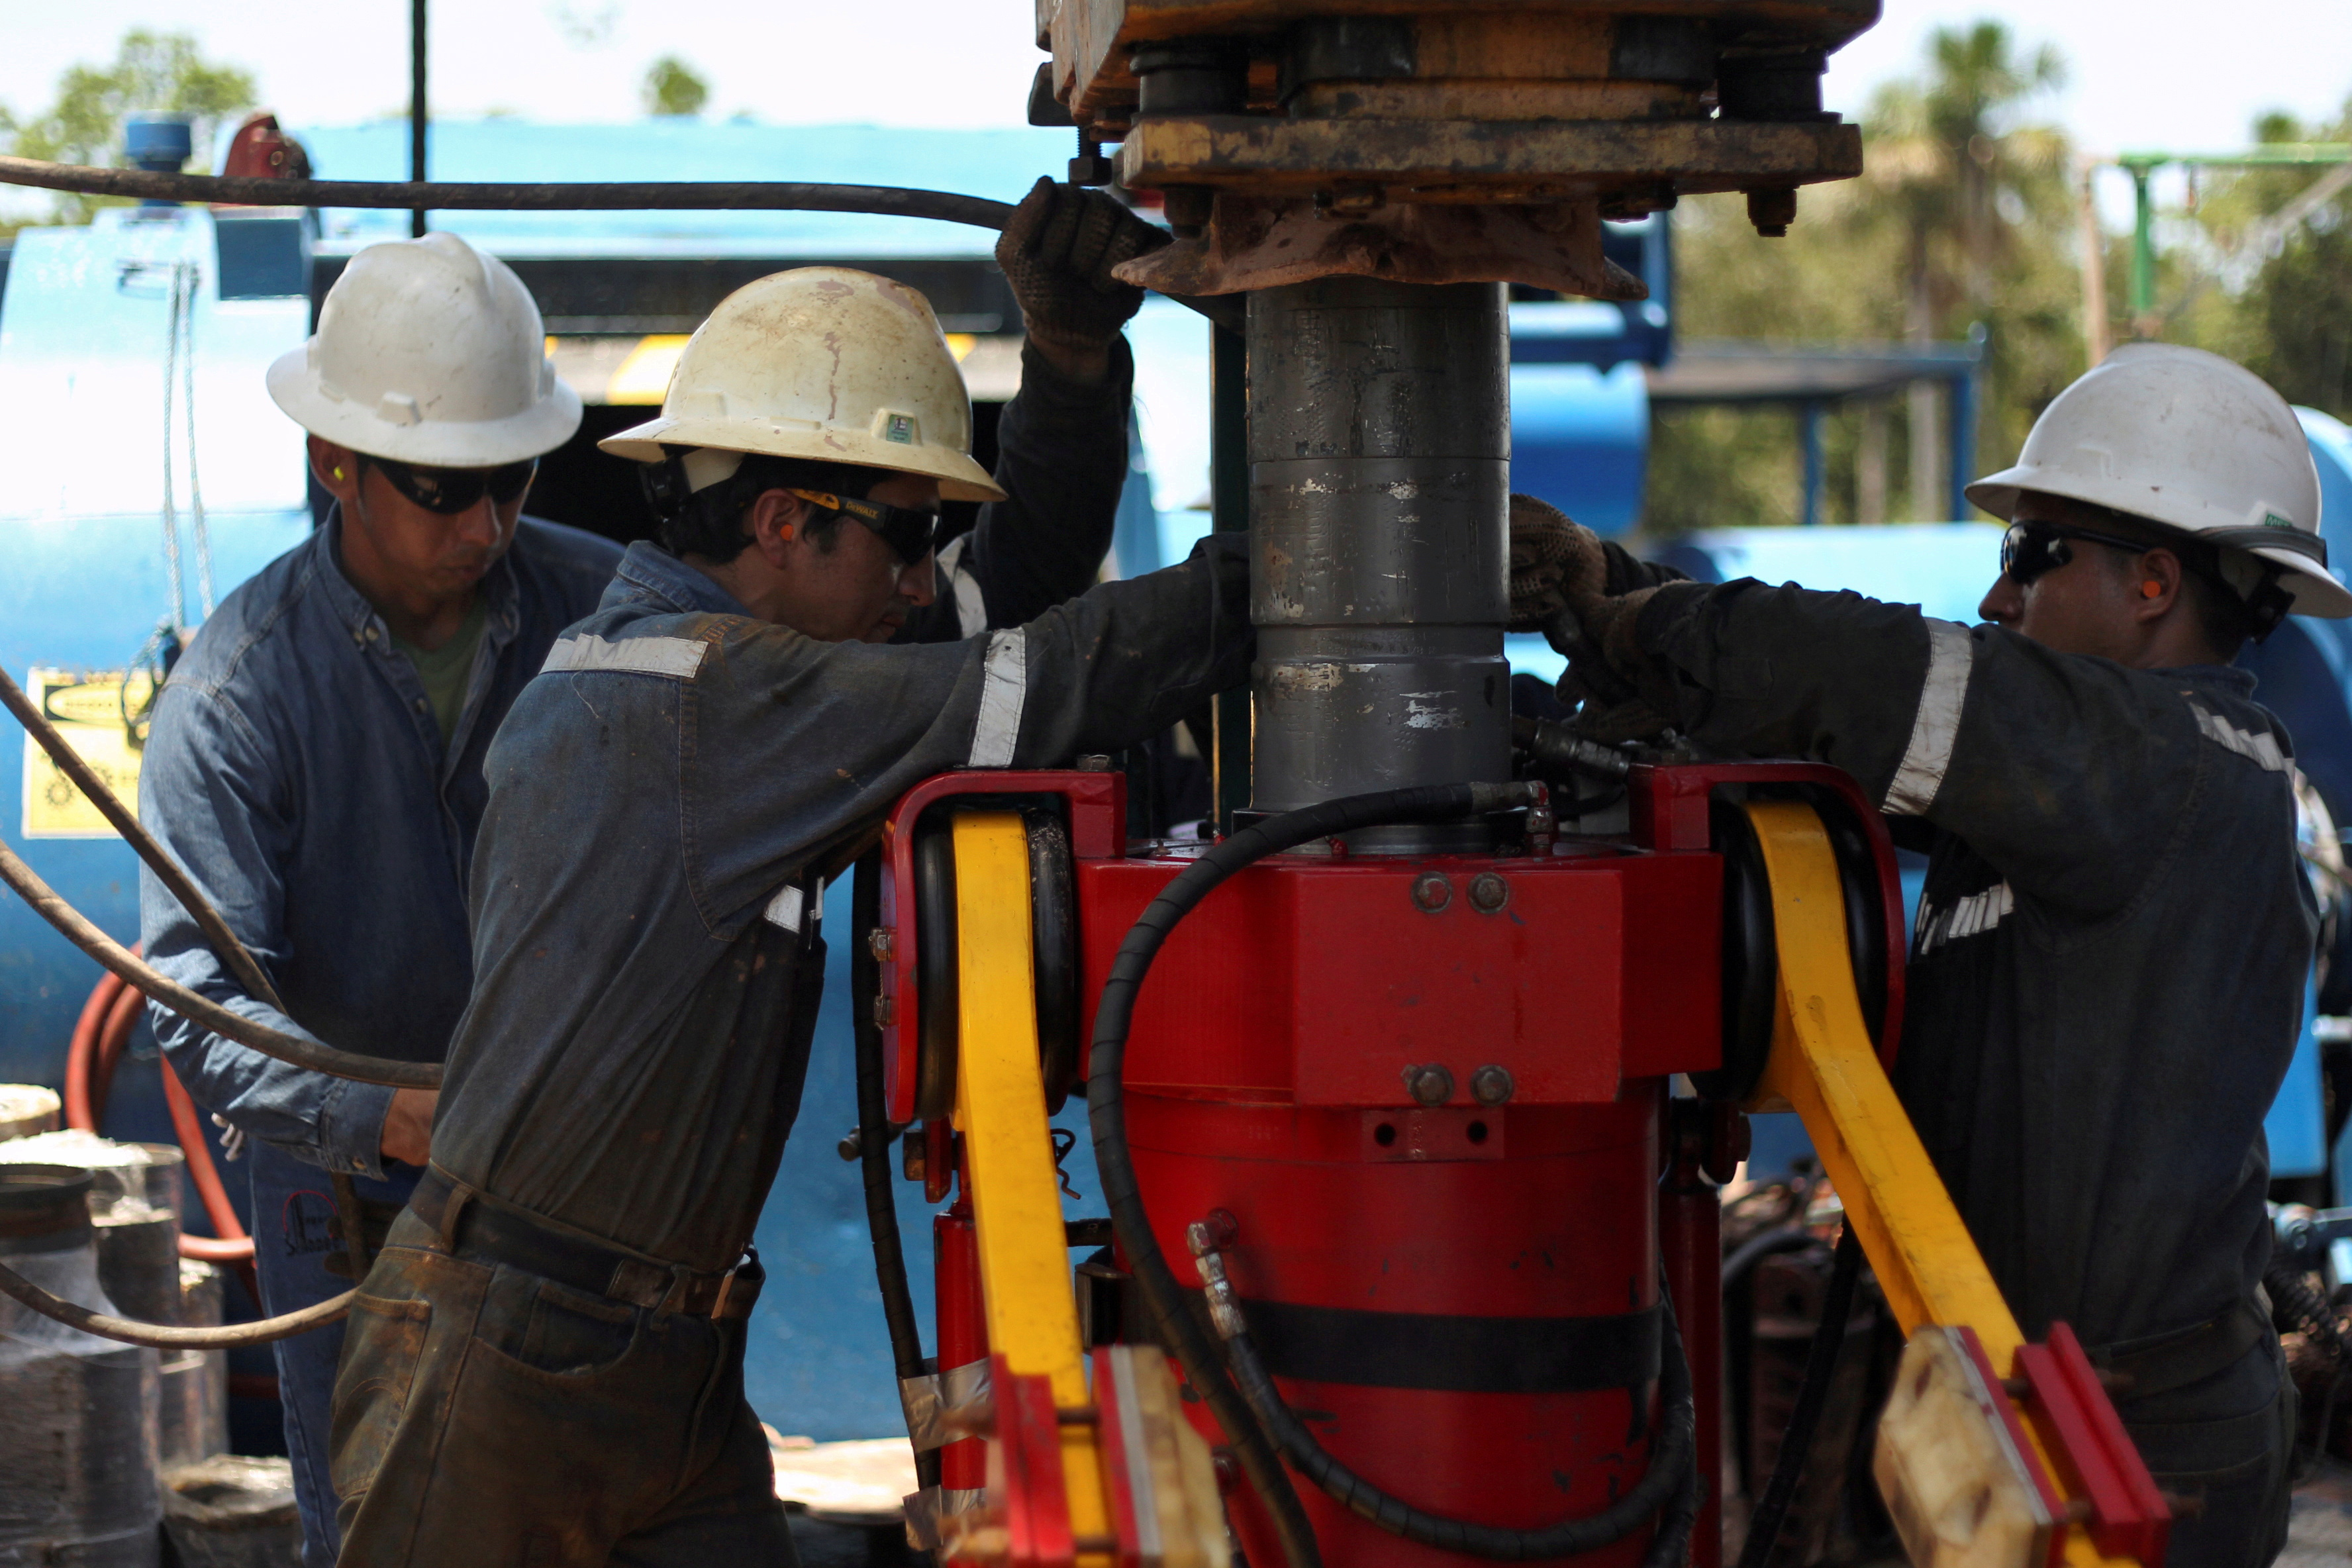 Oil field technicians work with a drill at a rig of Ecuador's state oil company Petroamazonas, in Tiputini, Ecuador October 19, 2017. Picture taken October 19, 2017. REUTERS/Daniel Tapia/File Photo